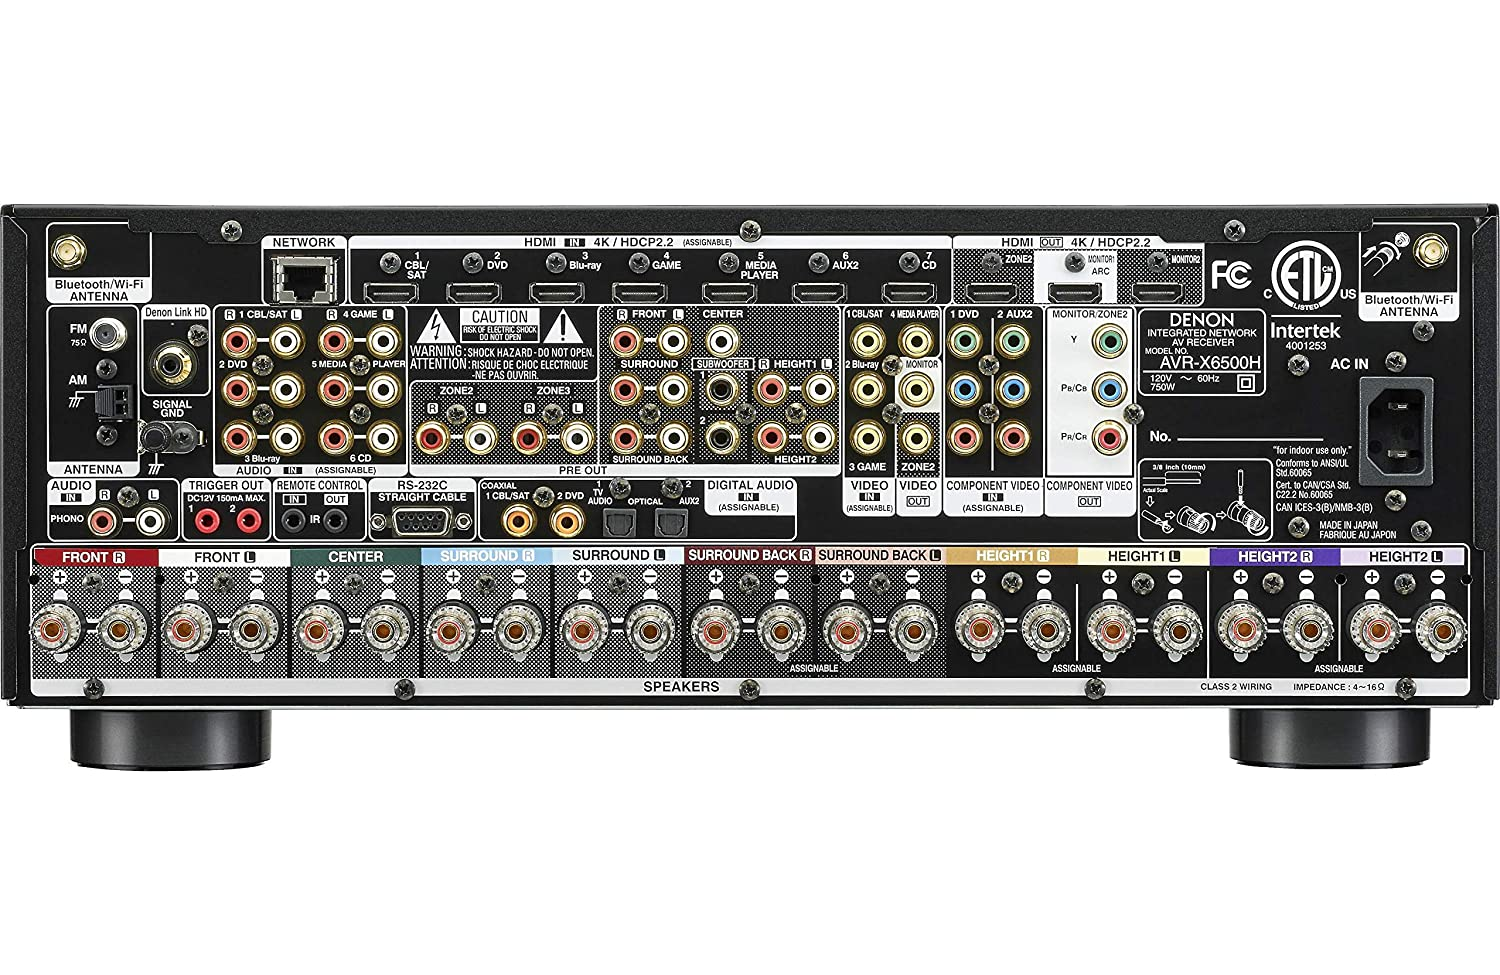 Denon AVR-X6500H Receiver - 8 HDMI In /3 Out, High Power 11 2 Channel (140  W/Ch) Amplifier Home Theater | Dolby Surround Sound, Music Streaming with